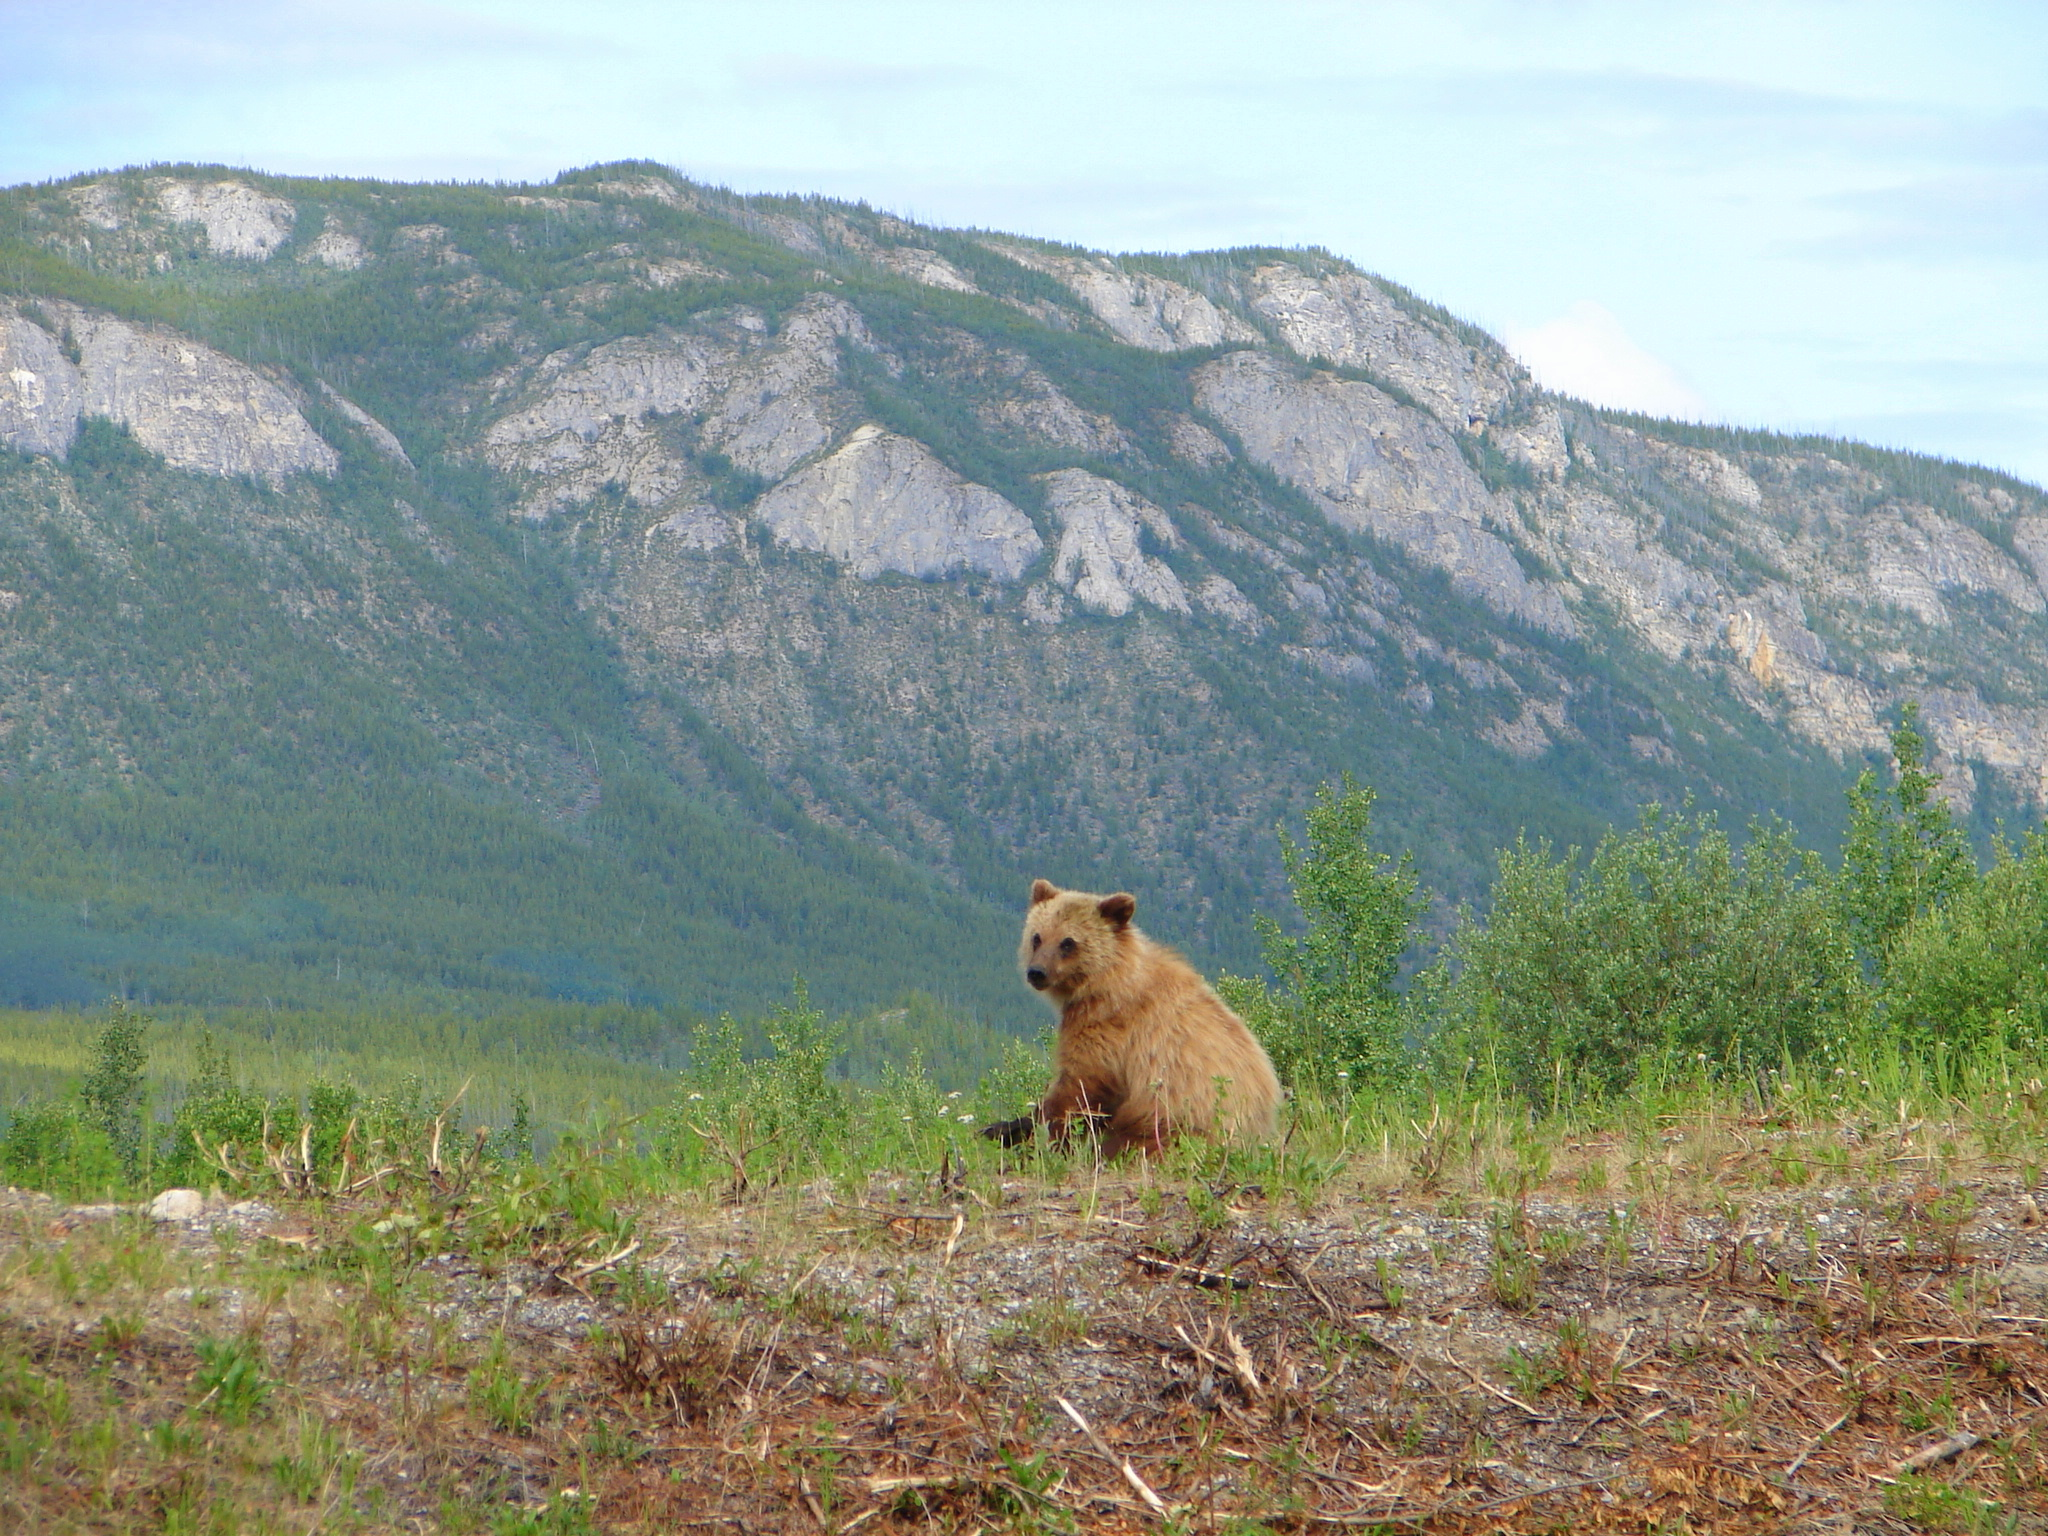 Grizzly bear sitting up - photo#21